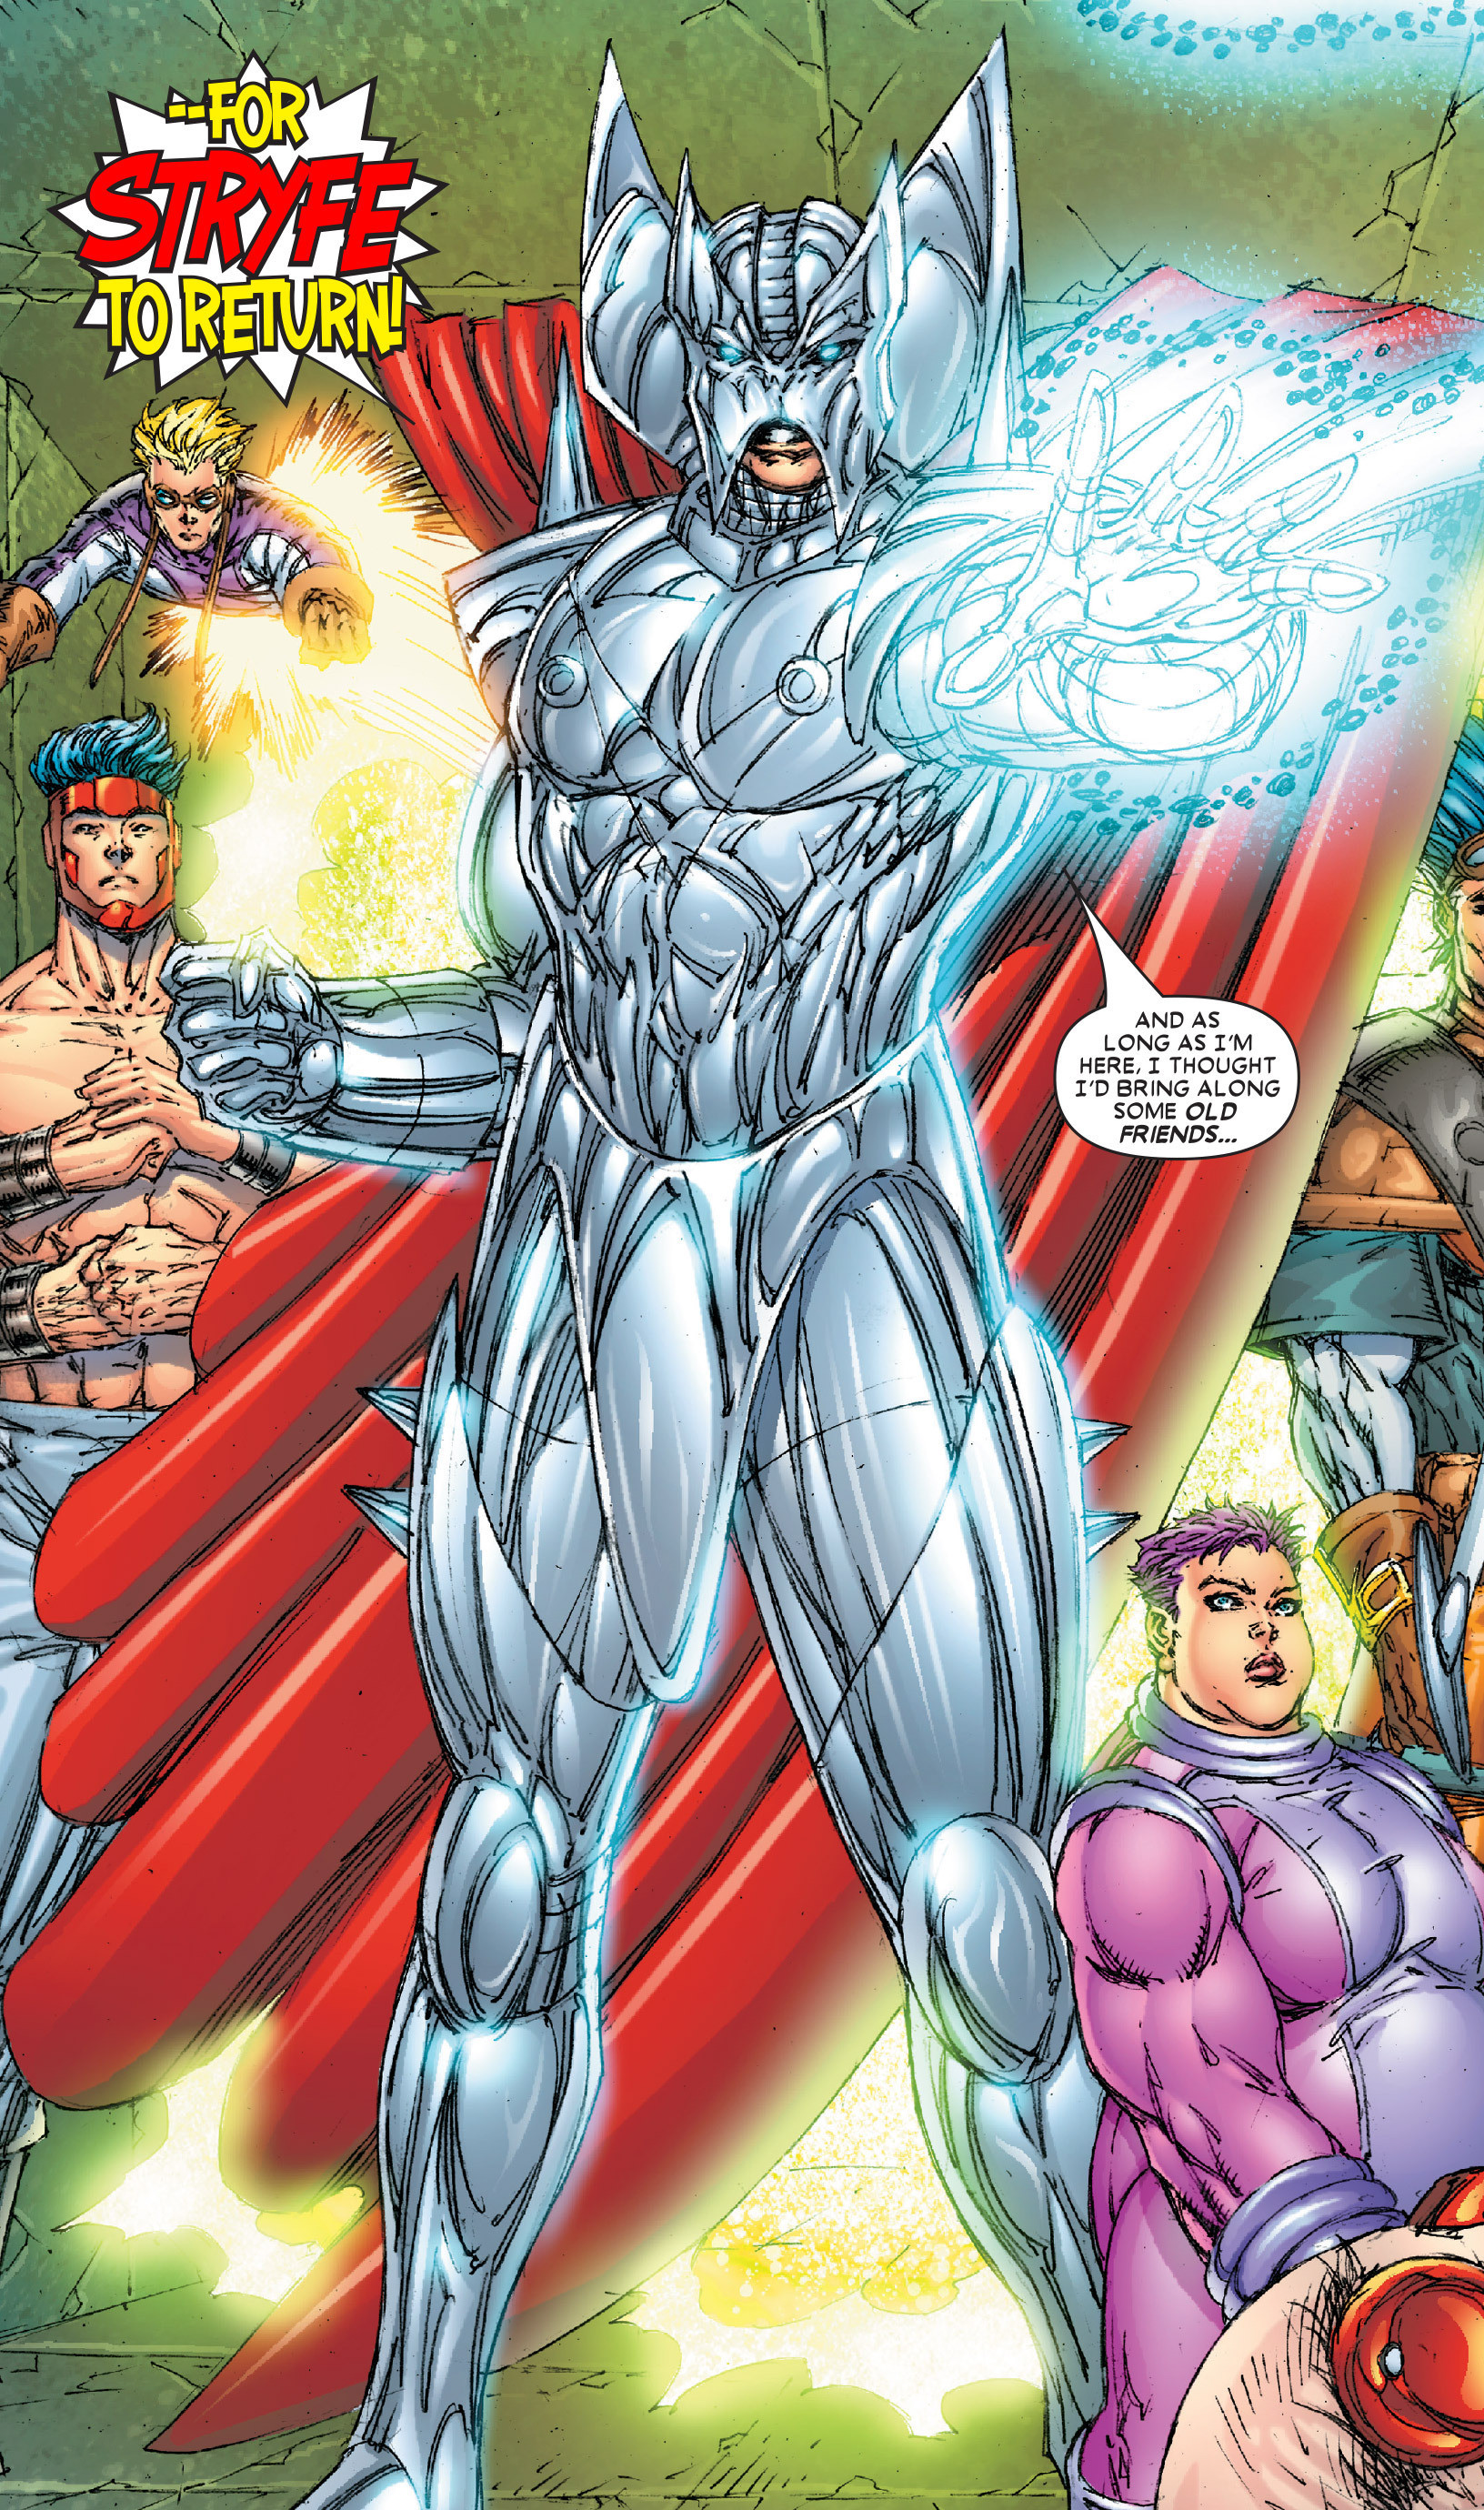 Mutant Liberation Front (Earth-616)/Gallery